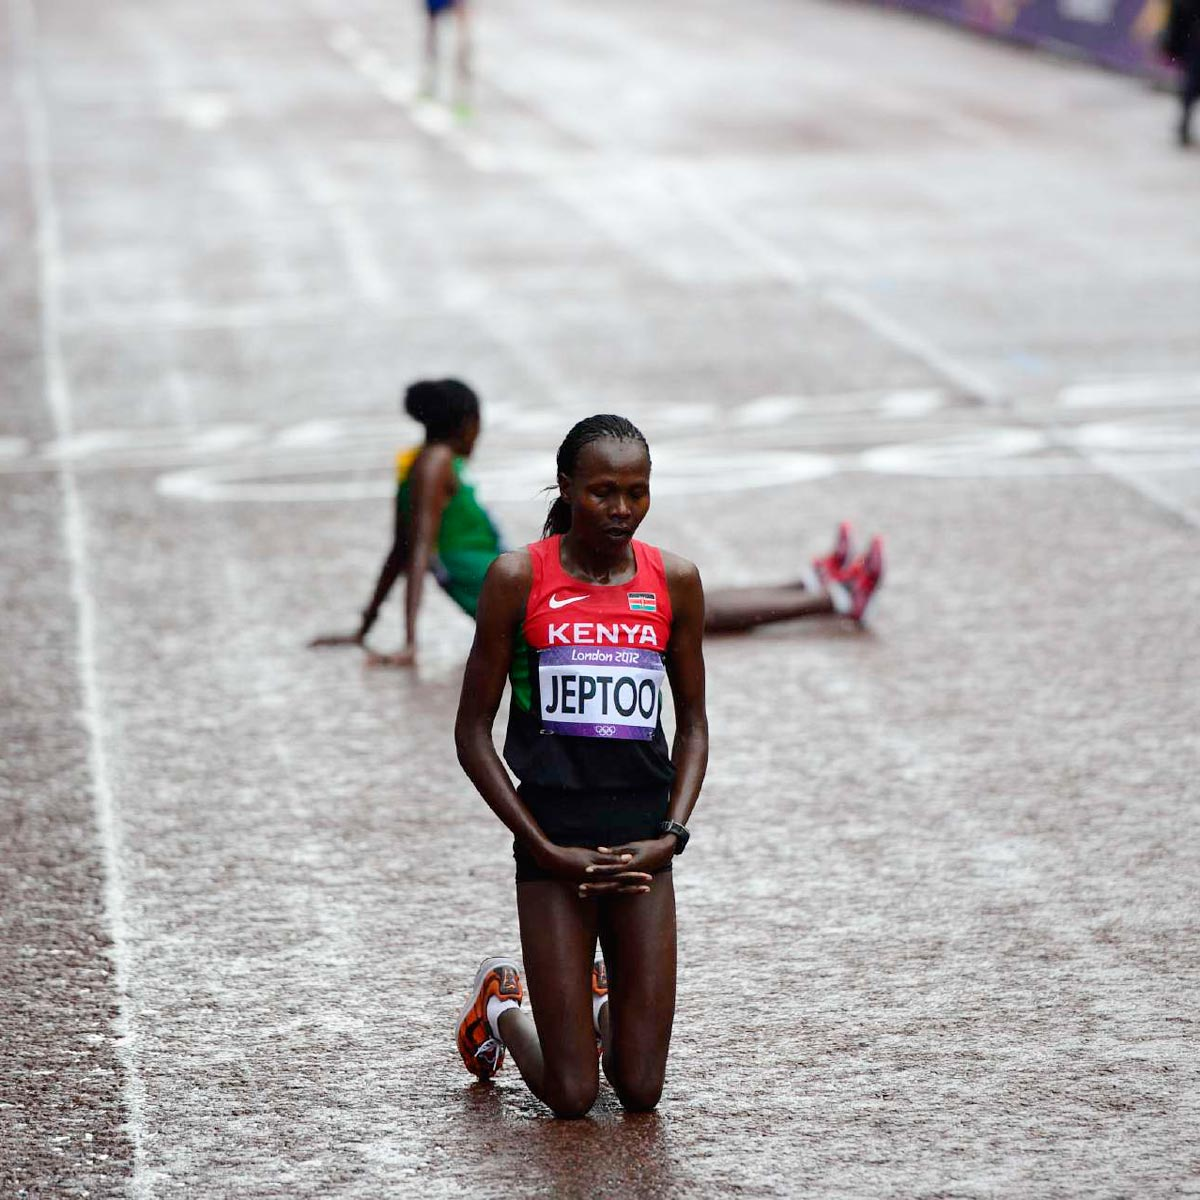 London Olympics, Aug. 5, 2012 | After finishing five seconds behind winner Tiki Gelana of Ethiopia in the hard-fought women's marathon, silver medalist Priscah Jeptoo of Kenya paused.